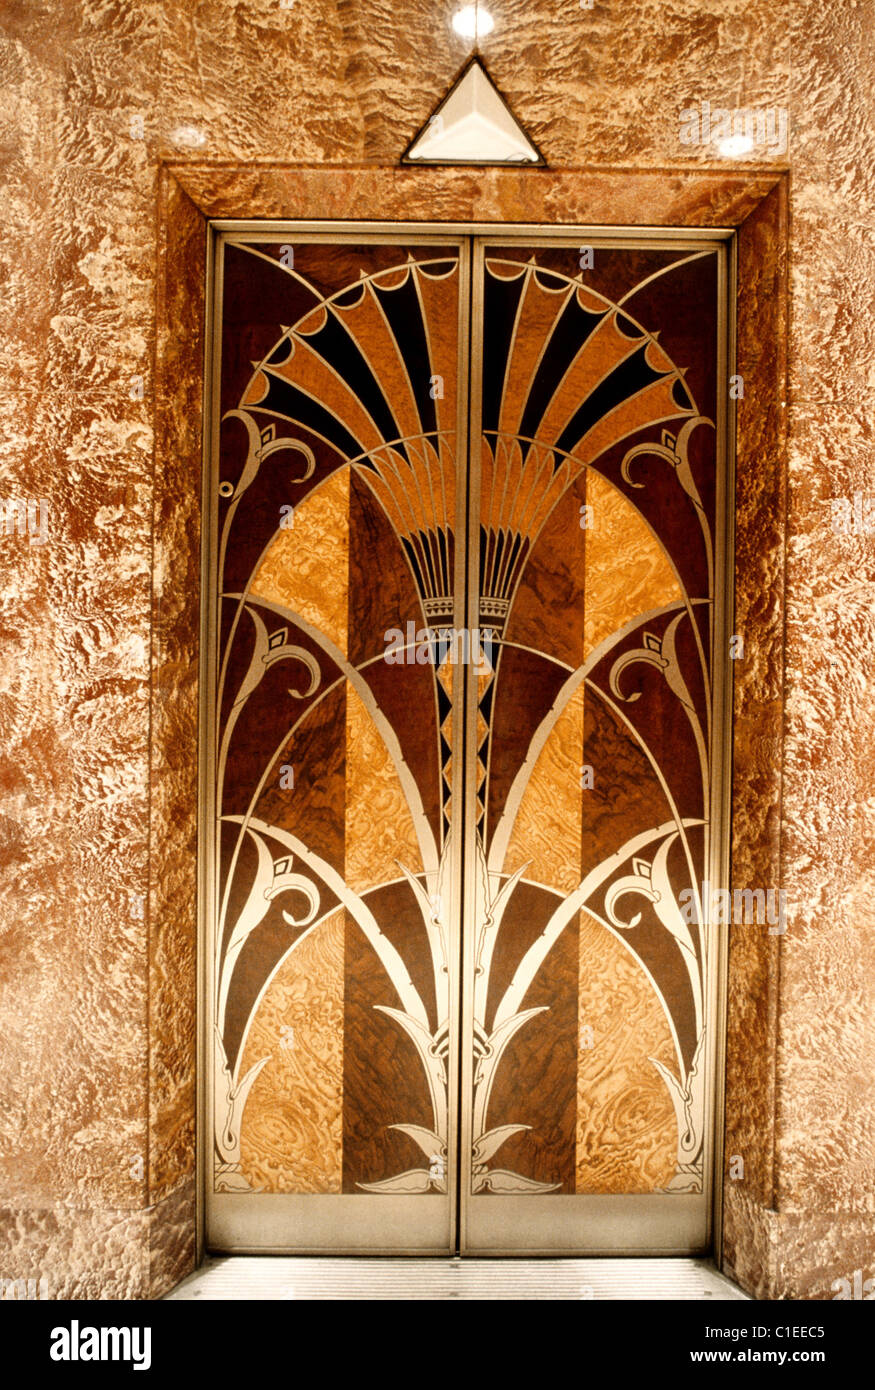 United States, New York City, Manhattan, inside the Chrysler Building, elevator door - Stock Image